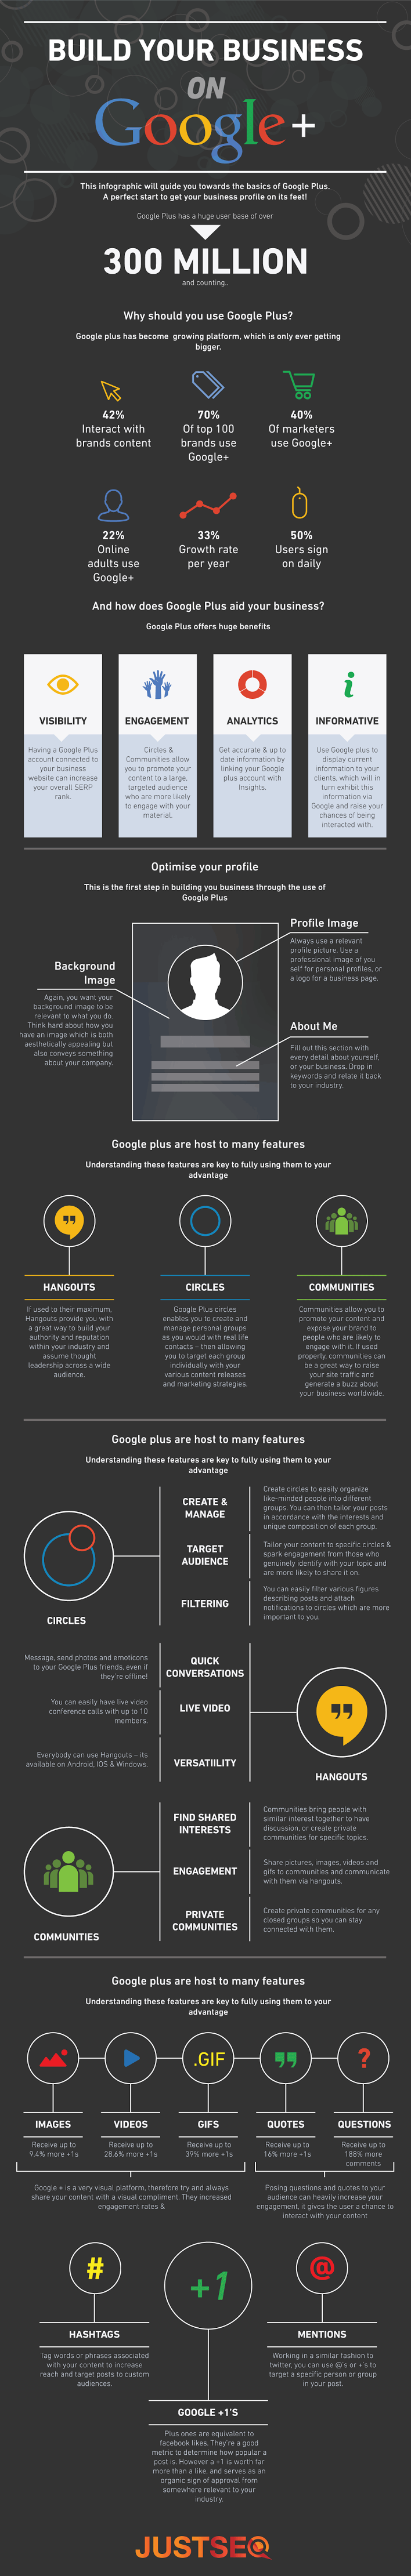 Building your business on Google+, The infographic visual guide